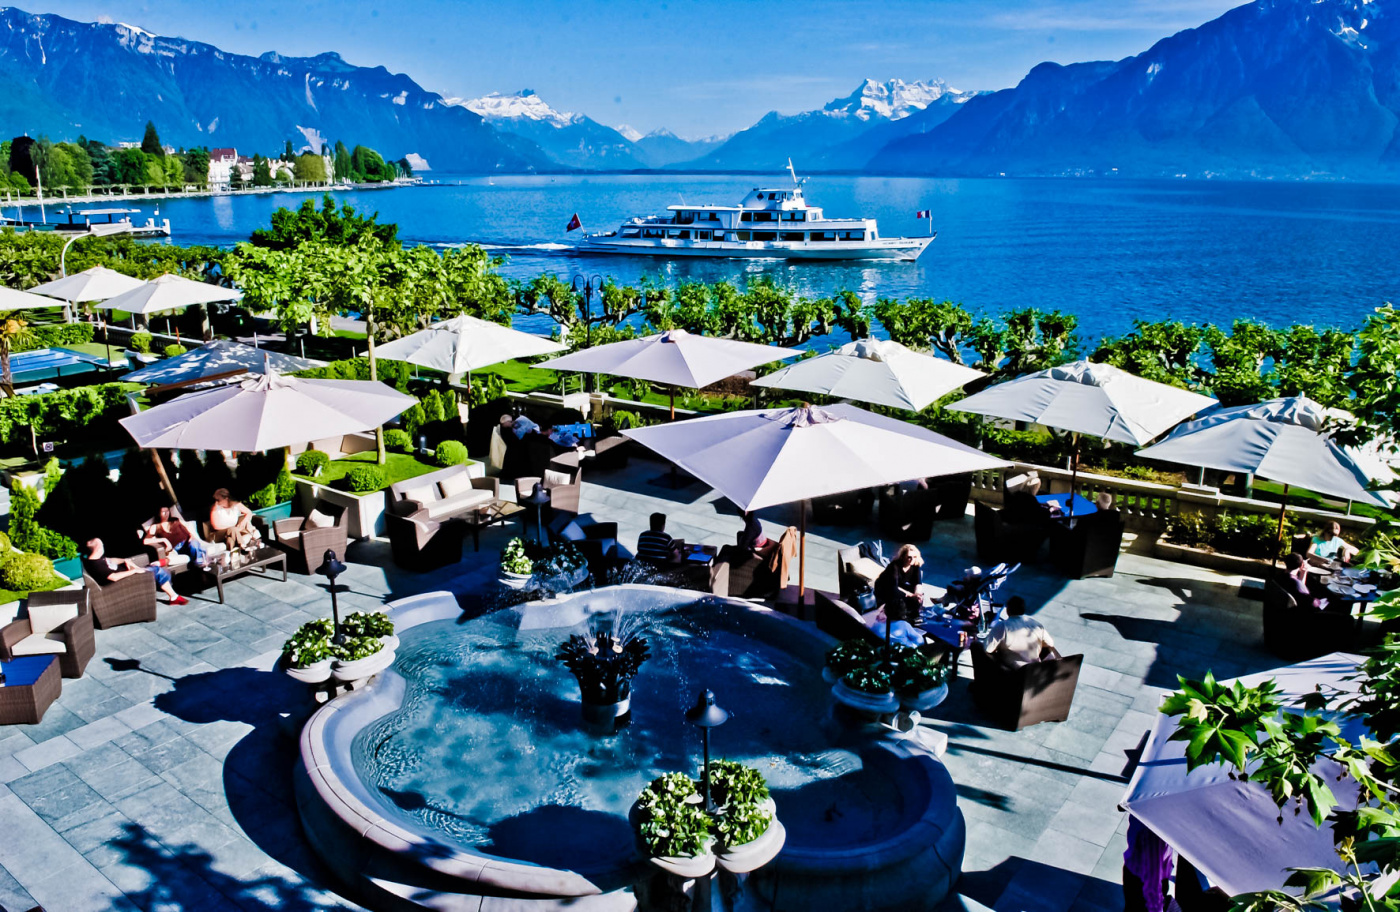 Terrace with lake view in Switzerland for luxury weddings